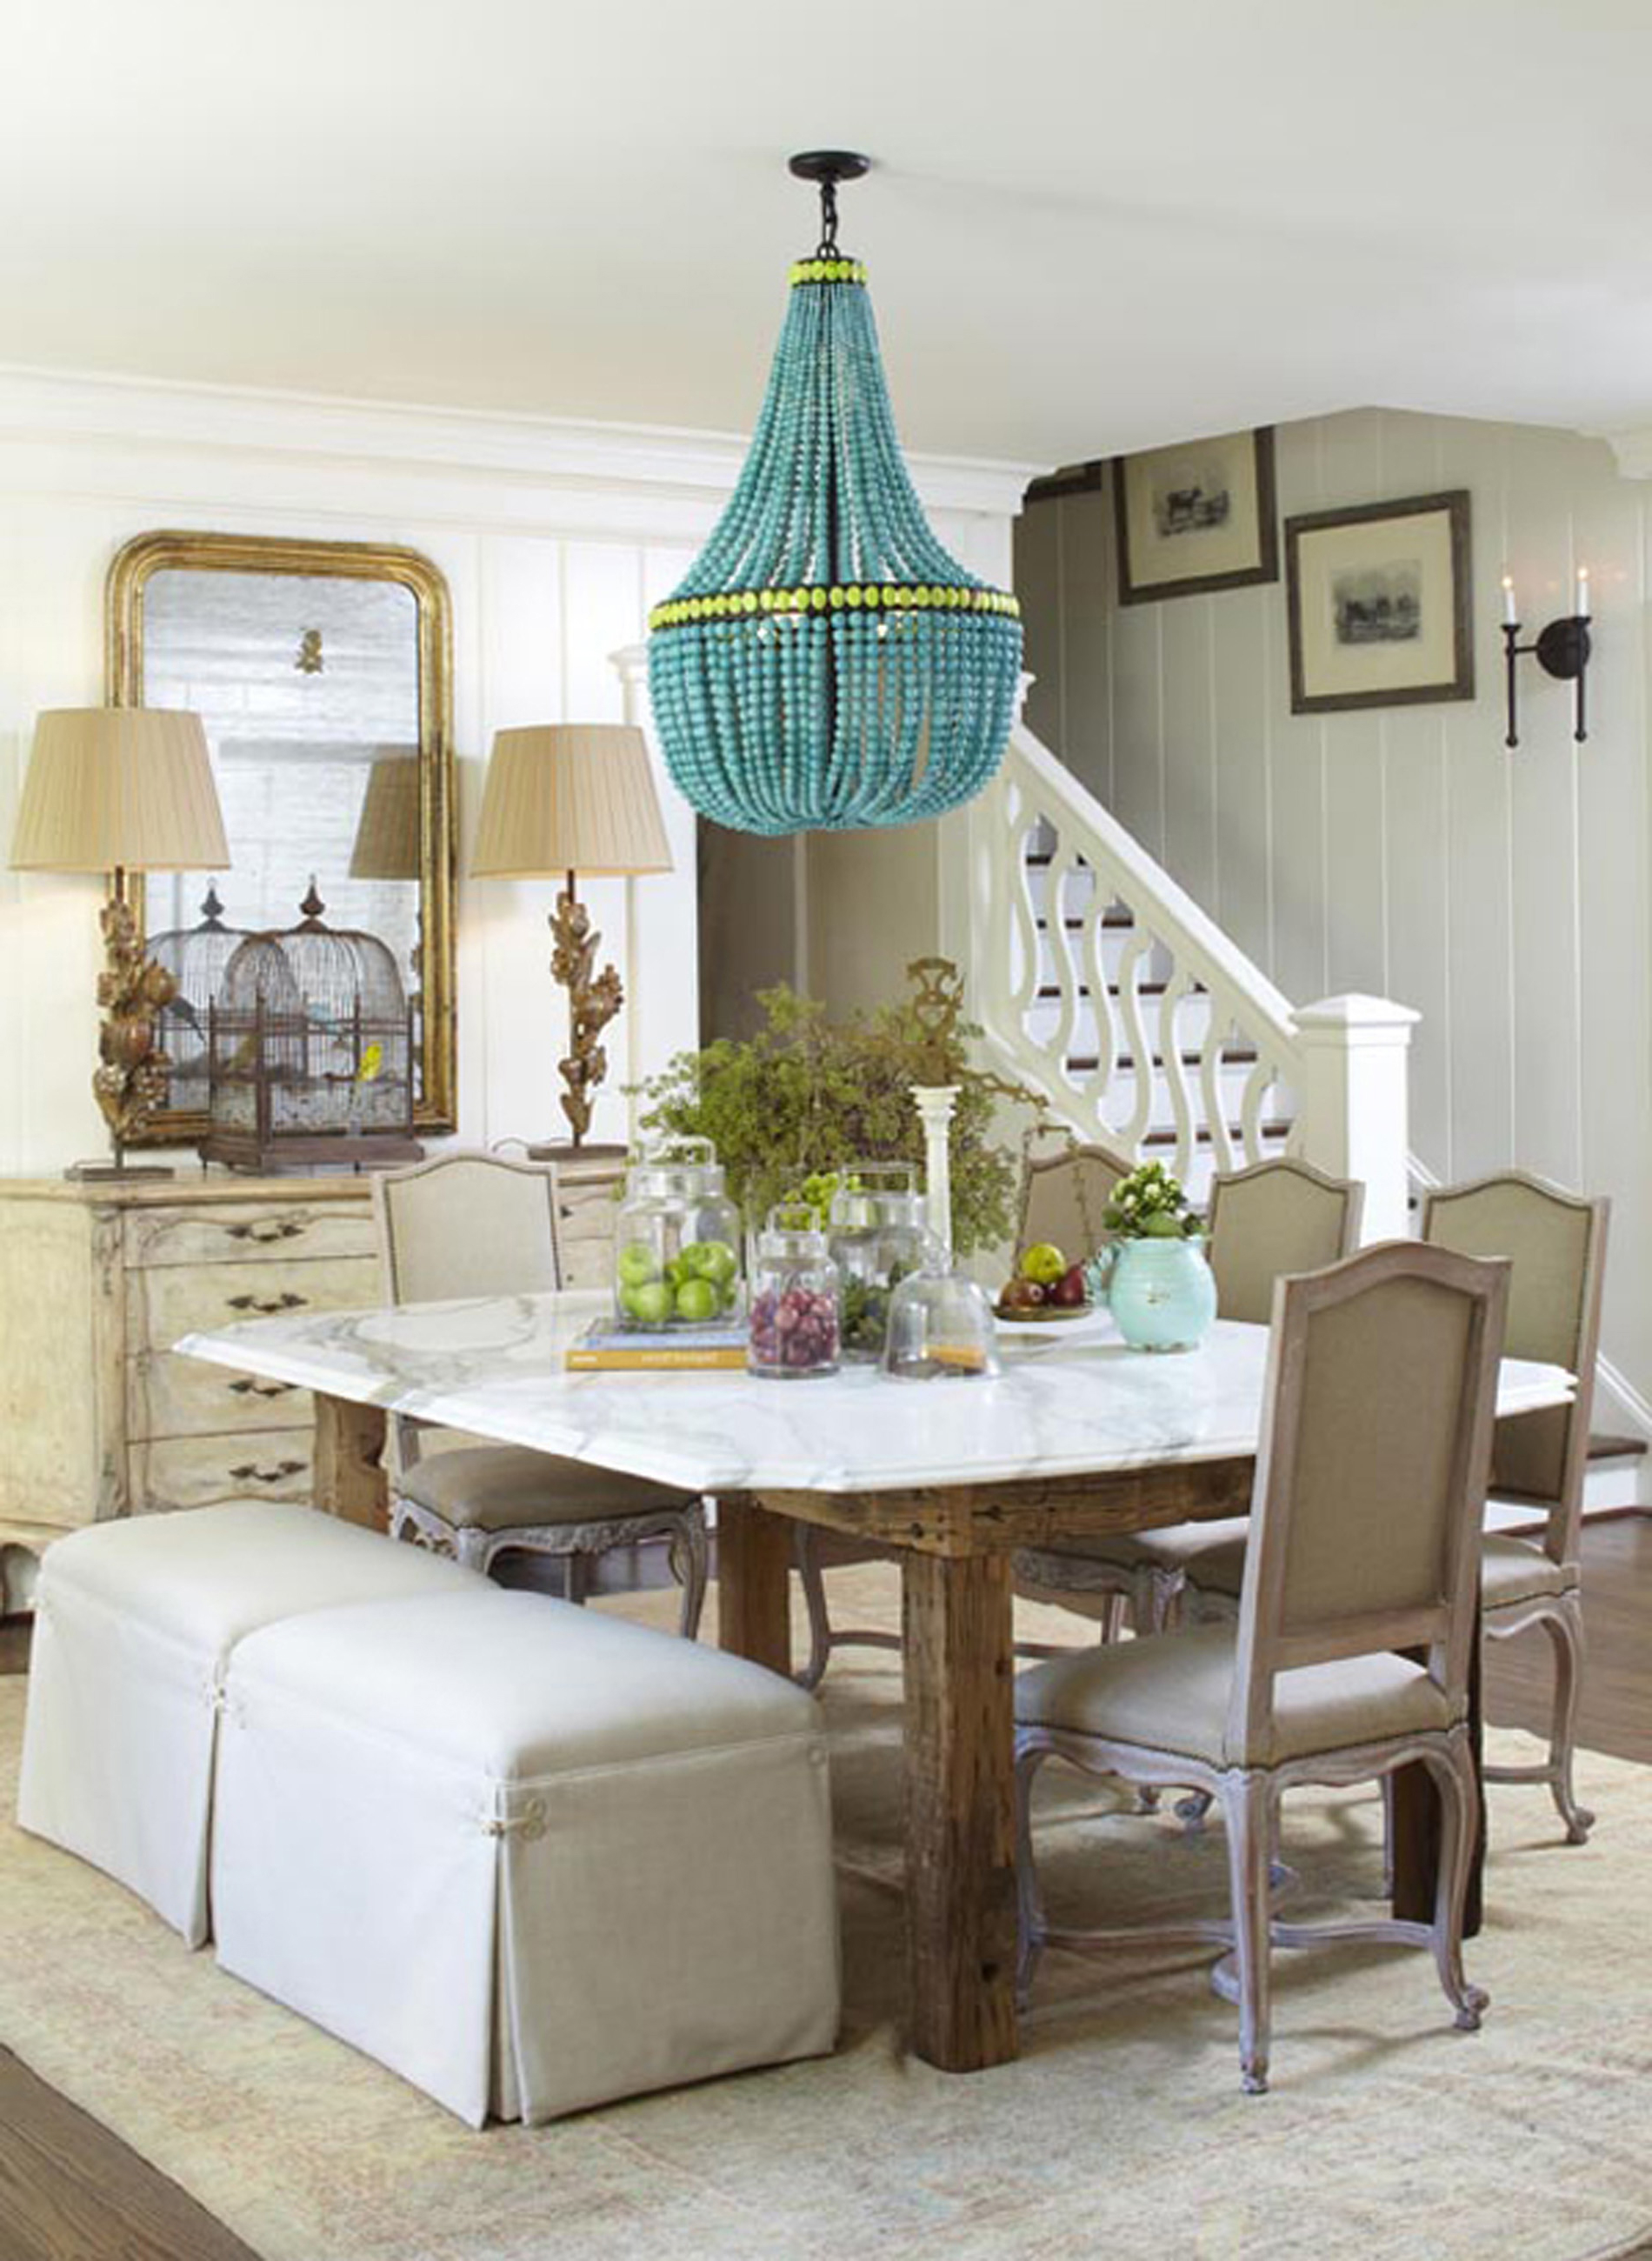 Apartments Decor Of Meg Adams Eclectic Dining Room With Unique Blue Lantern Listed In Charming With Stunning Eclectic Lantern Ideas (Image 16 of 45)